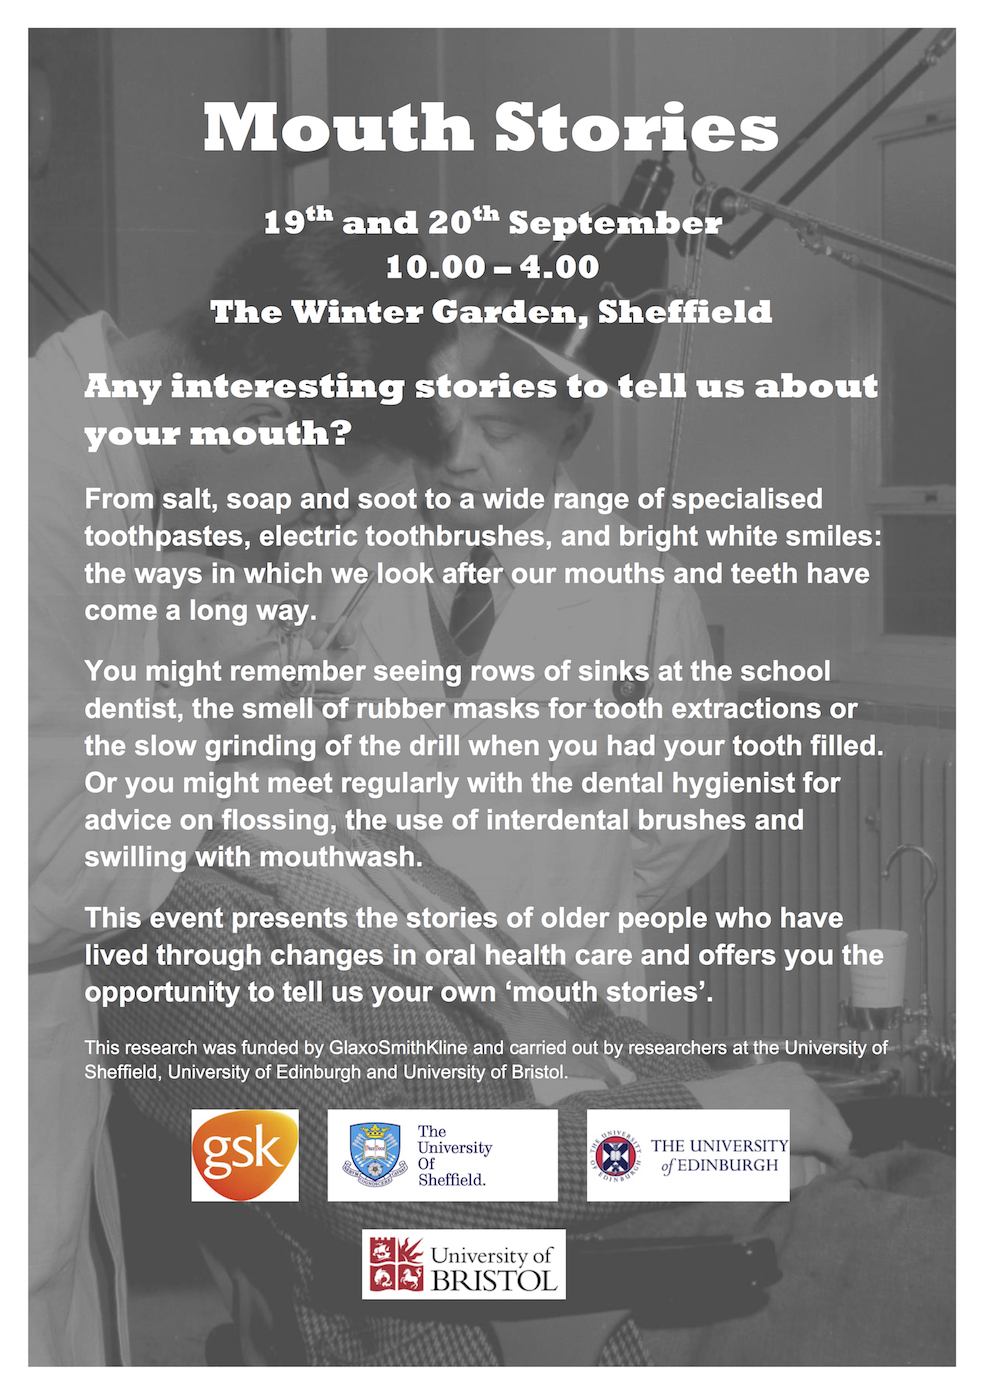 mouth stories event in the winter garden 19 20th sept 2017 our